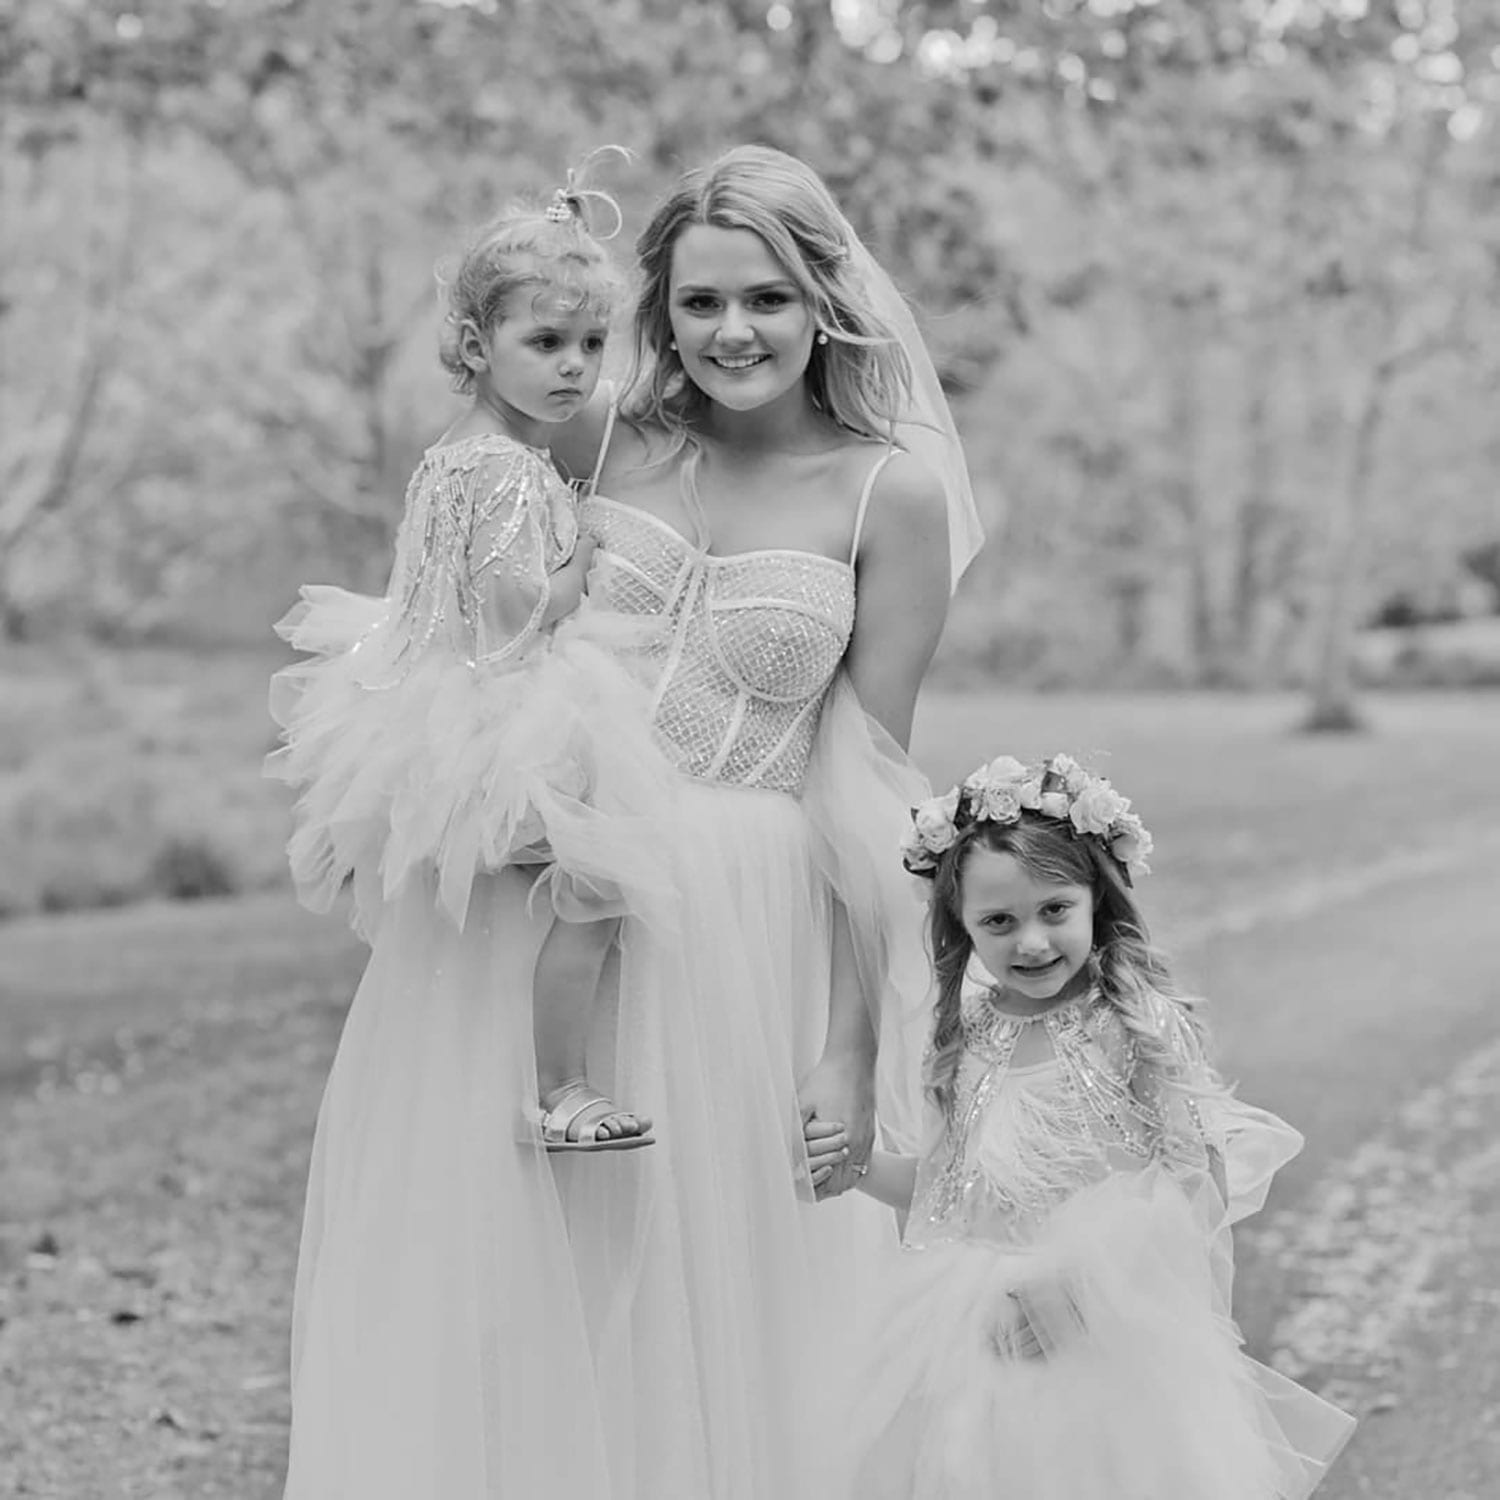 Vinka Design Features Real Weddings - bride wearing custom made gown with two different beadings incorporated into a fitted, structured bodice, and dreamy layered tulle skirt. Bride with children